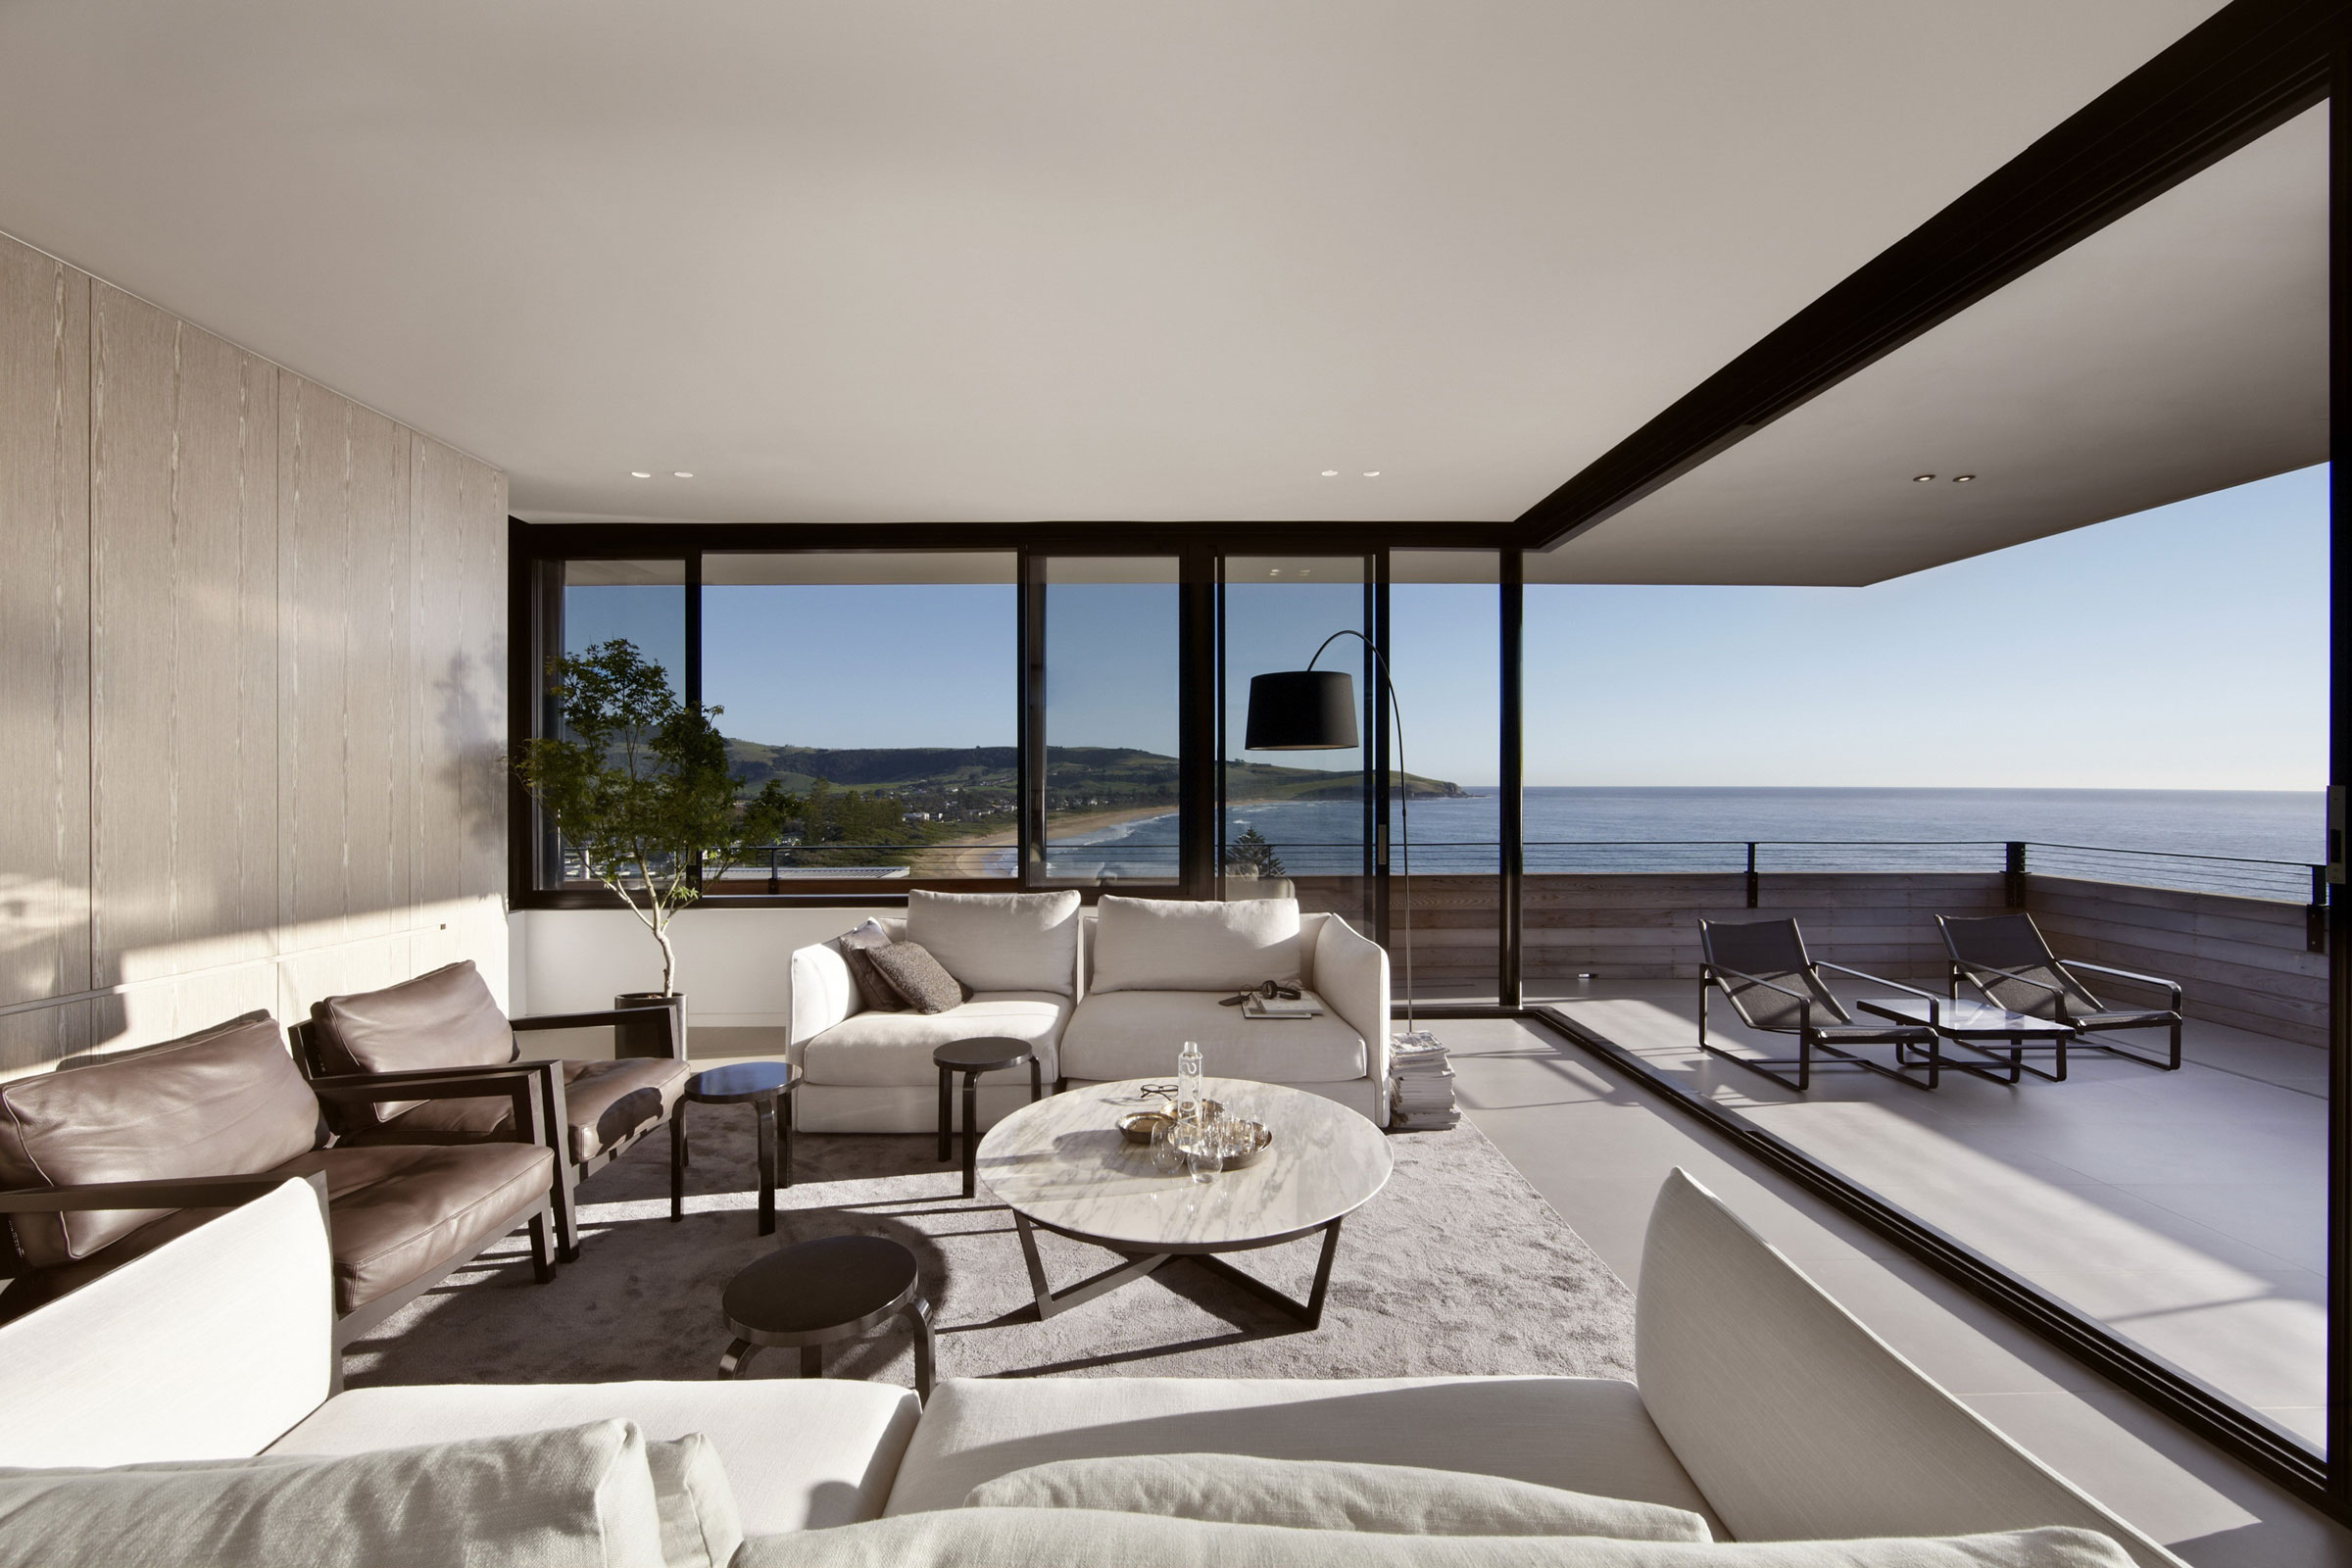 Smart Home Design From Modern Homes Design: Lamble Modern Beach House With 270˚ Views Of The Ocean By